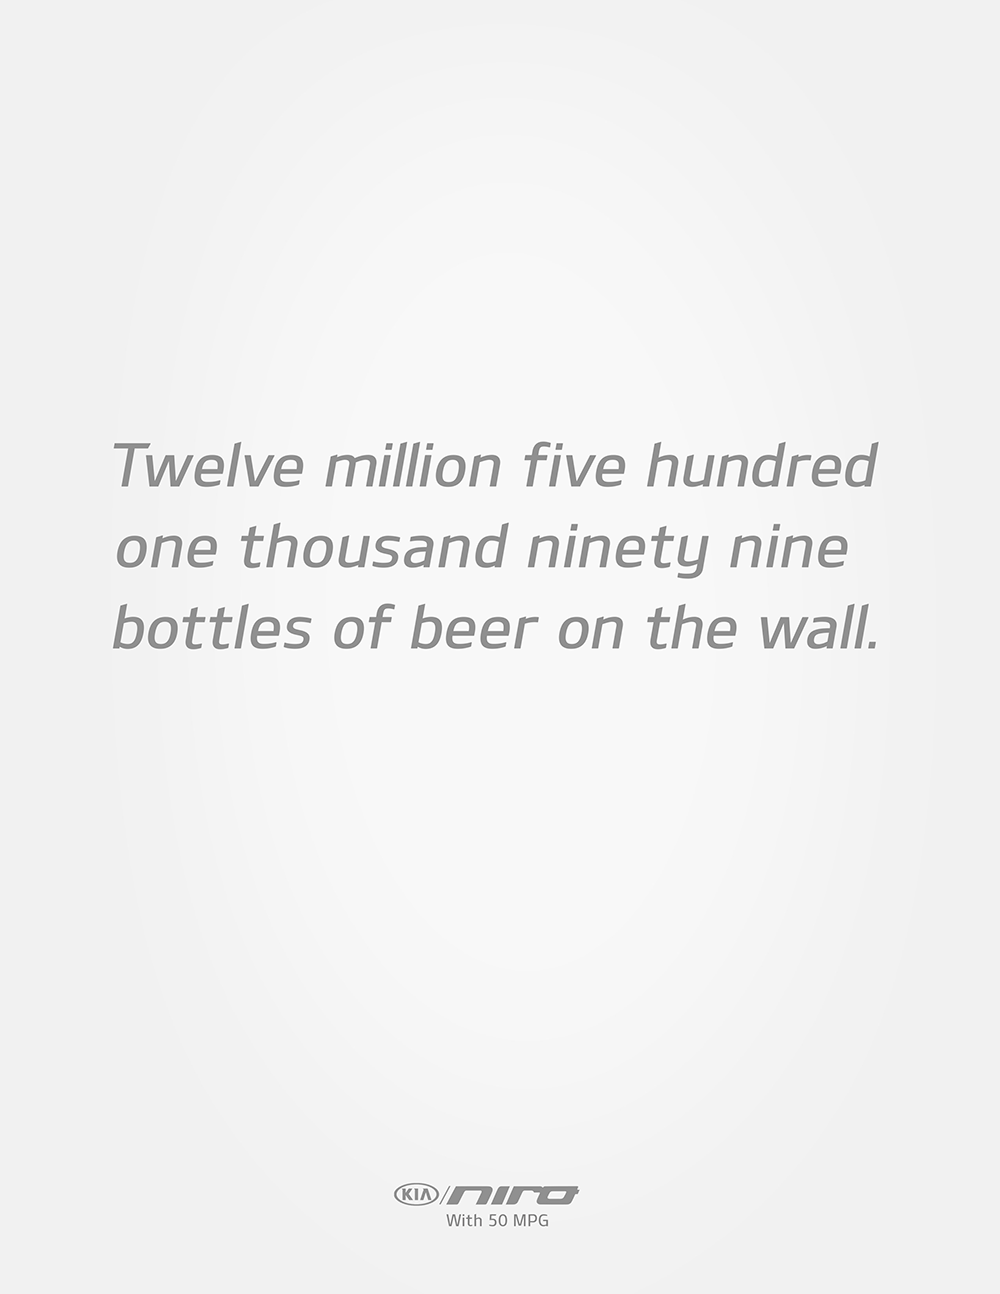 BottlesWall2.png